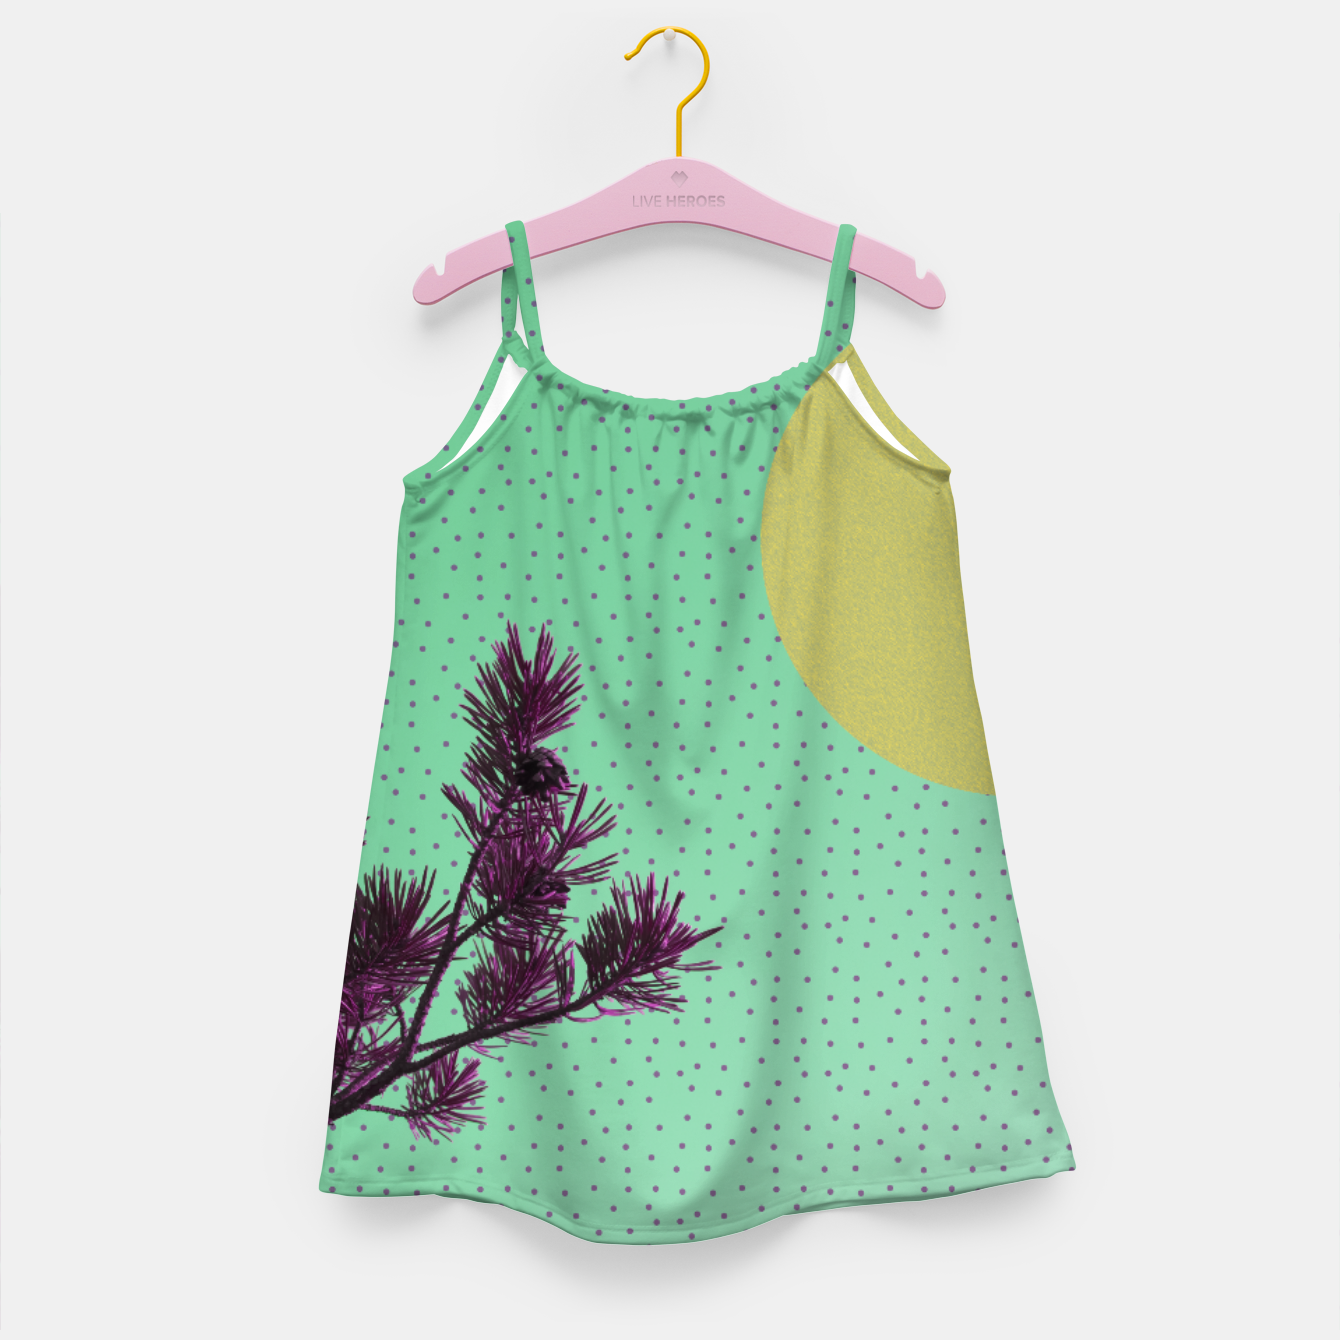 Imagen de Pine tree and purple polka dots Girl's Dress - Live Heroes